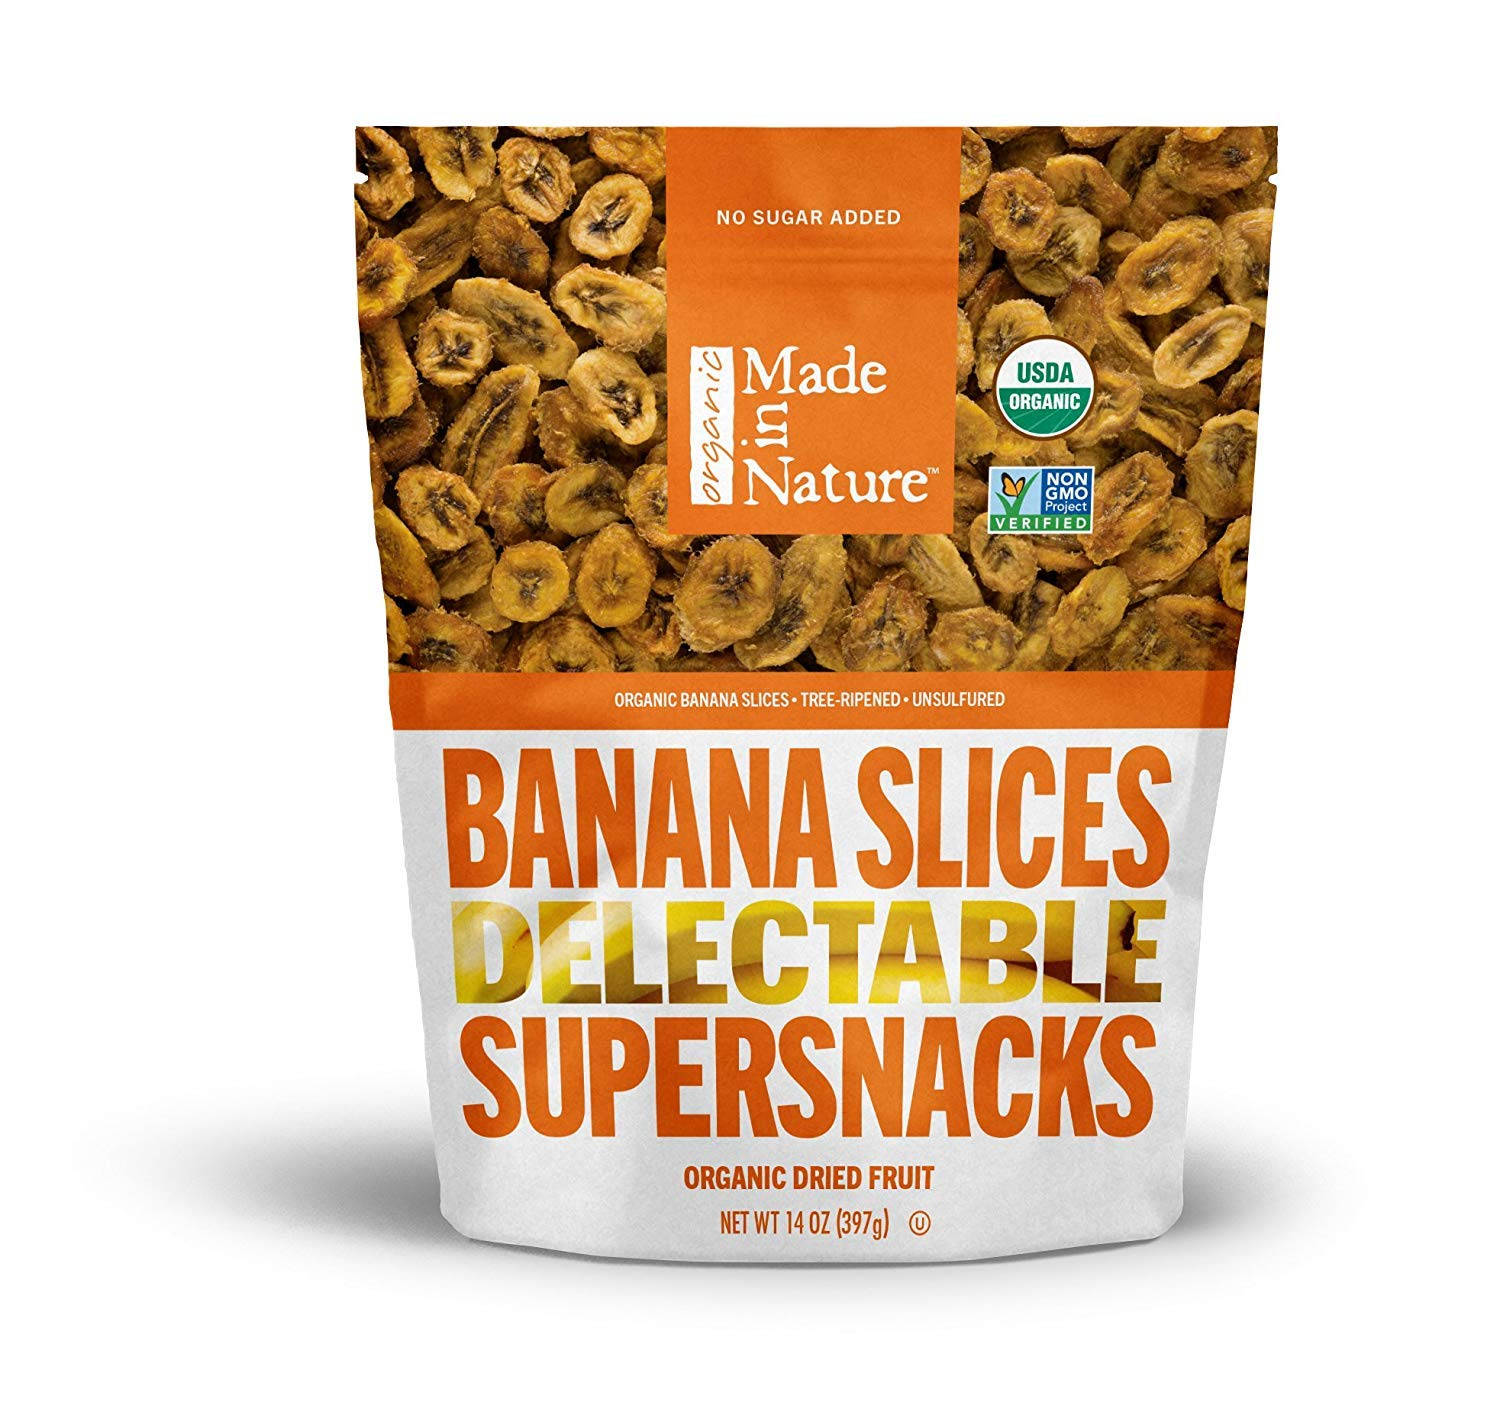 Made in Nature Organic Dried Fruit, Chewy Banana Slices, 14oz Bag – Non-GMO, Unsulfured Vegan Snack